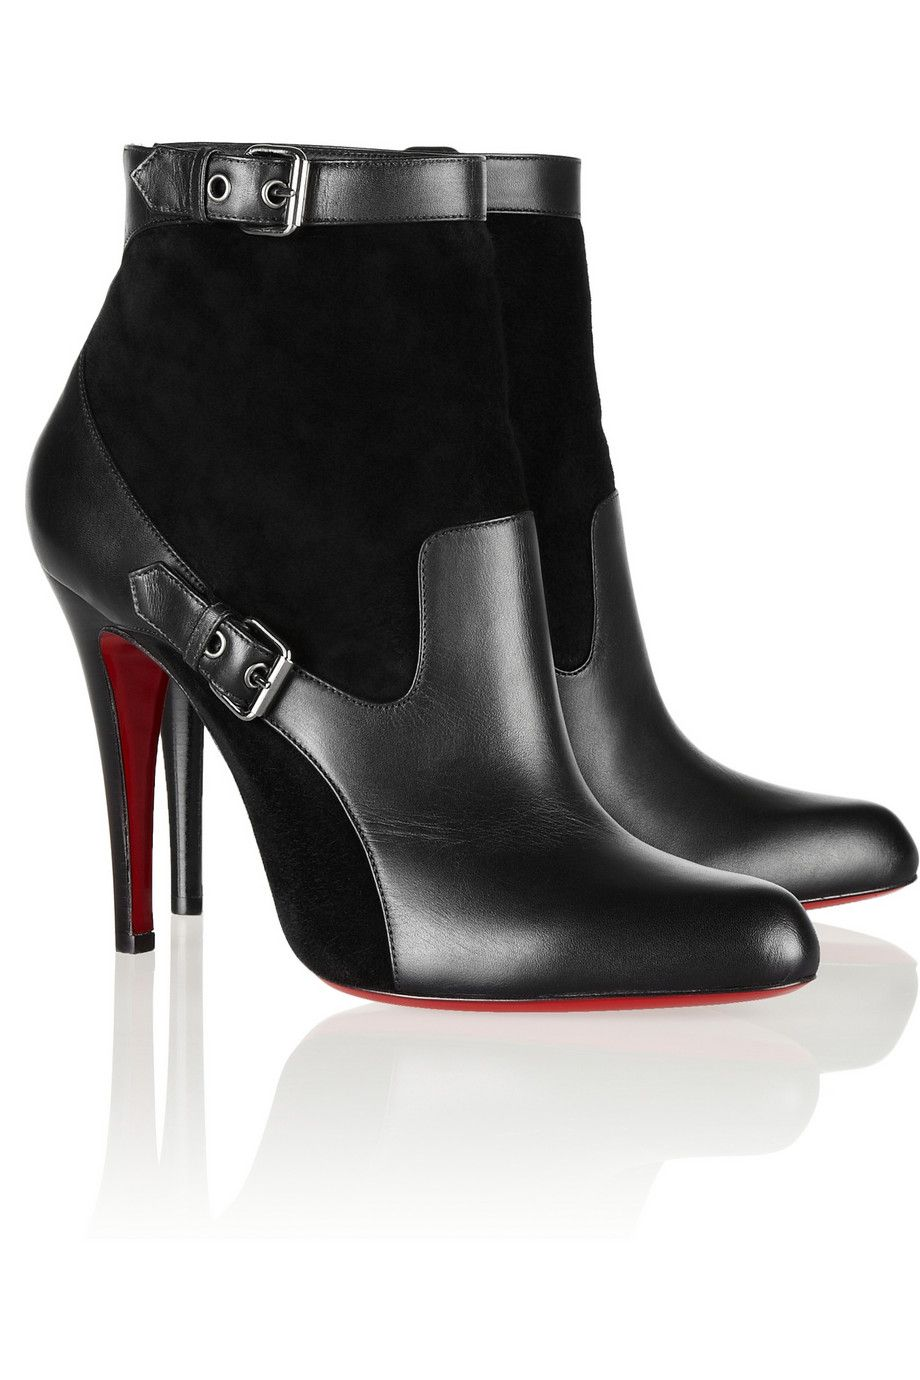 3d6782523d04 Christian louboutin Canassone 100 Buckled Suede And Leather Ankle Boots in  Black